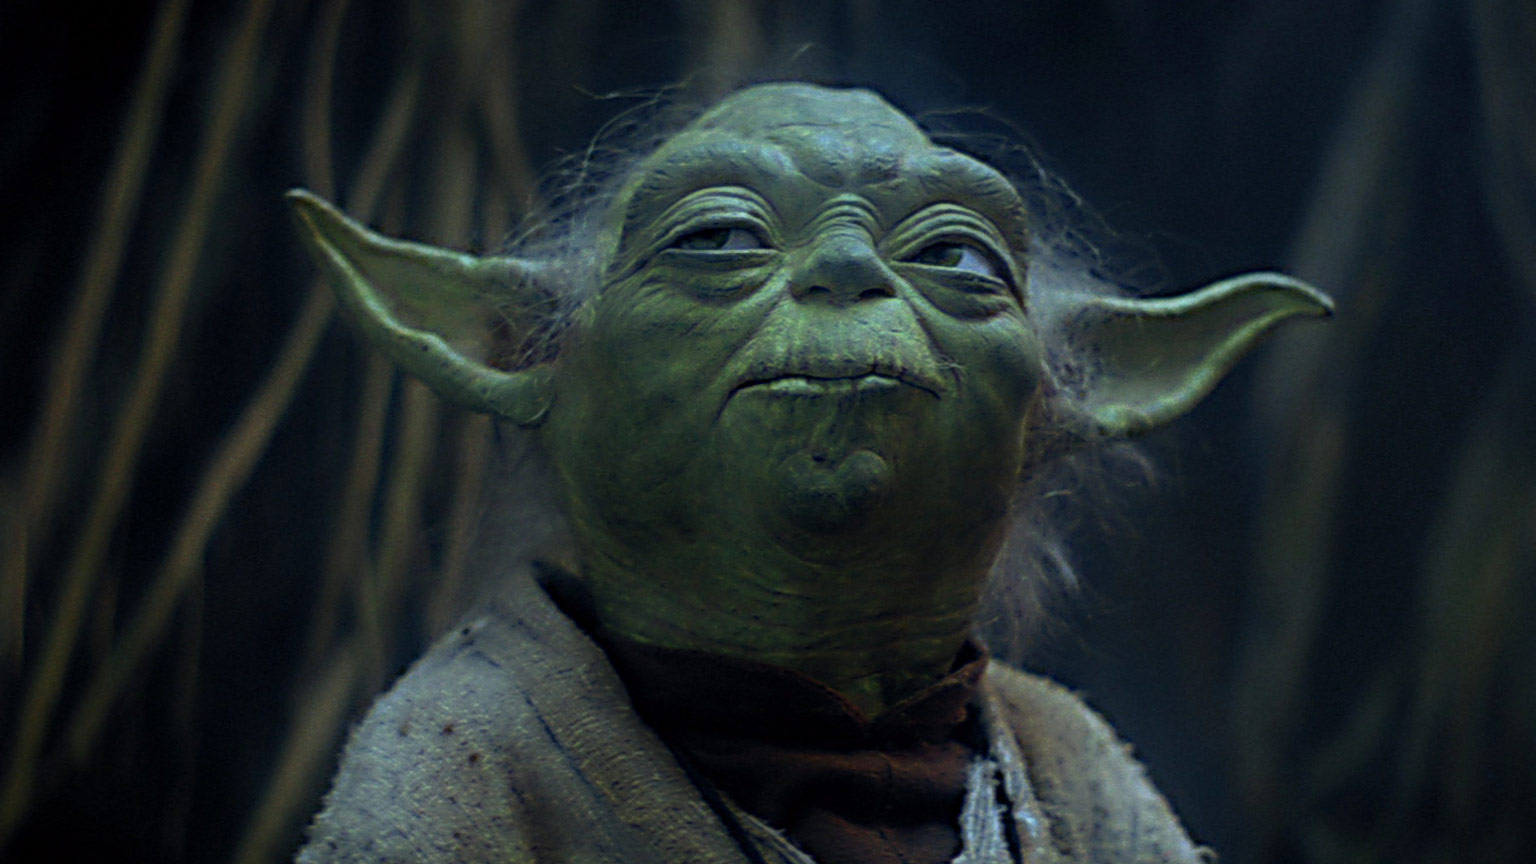 yoda empire strikes back wallpaper - photo #24